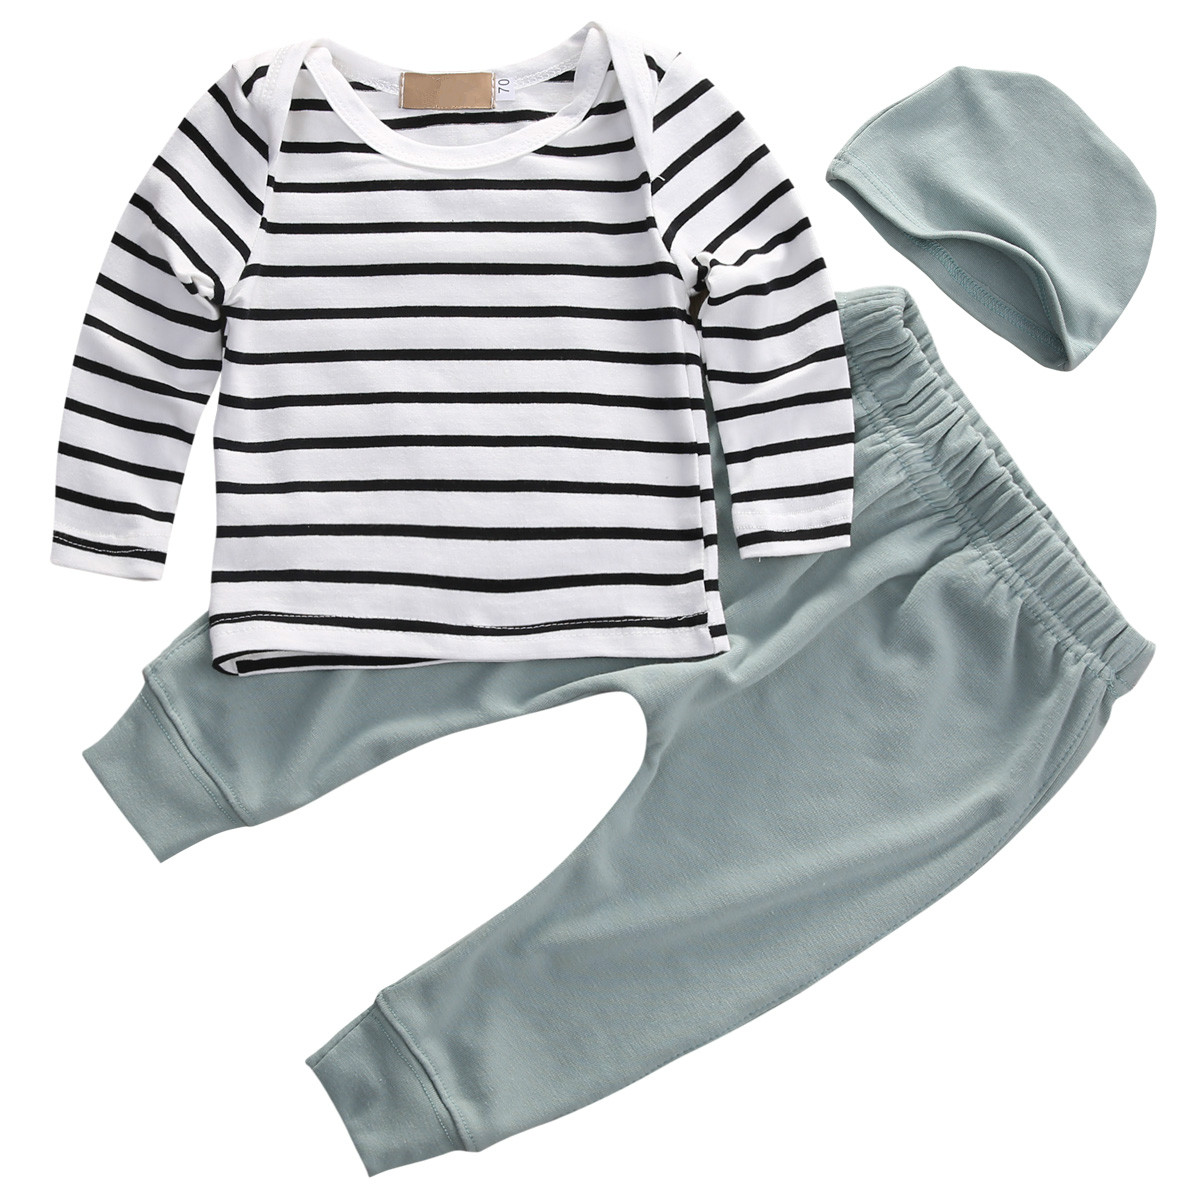 New Fashion Newborn Toddler Kids Baby Boys Girls Outfits Clothes Long Sleeve Striped T-shirt Tops+Pants 3PCS Cute Bbay Kids Set hot sale 2016 kids boys girls summer tops baby t shirts fashion leaf print sleeveless kniting tee baby clothes children t shirt